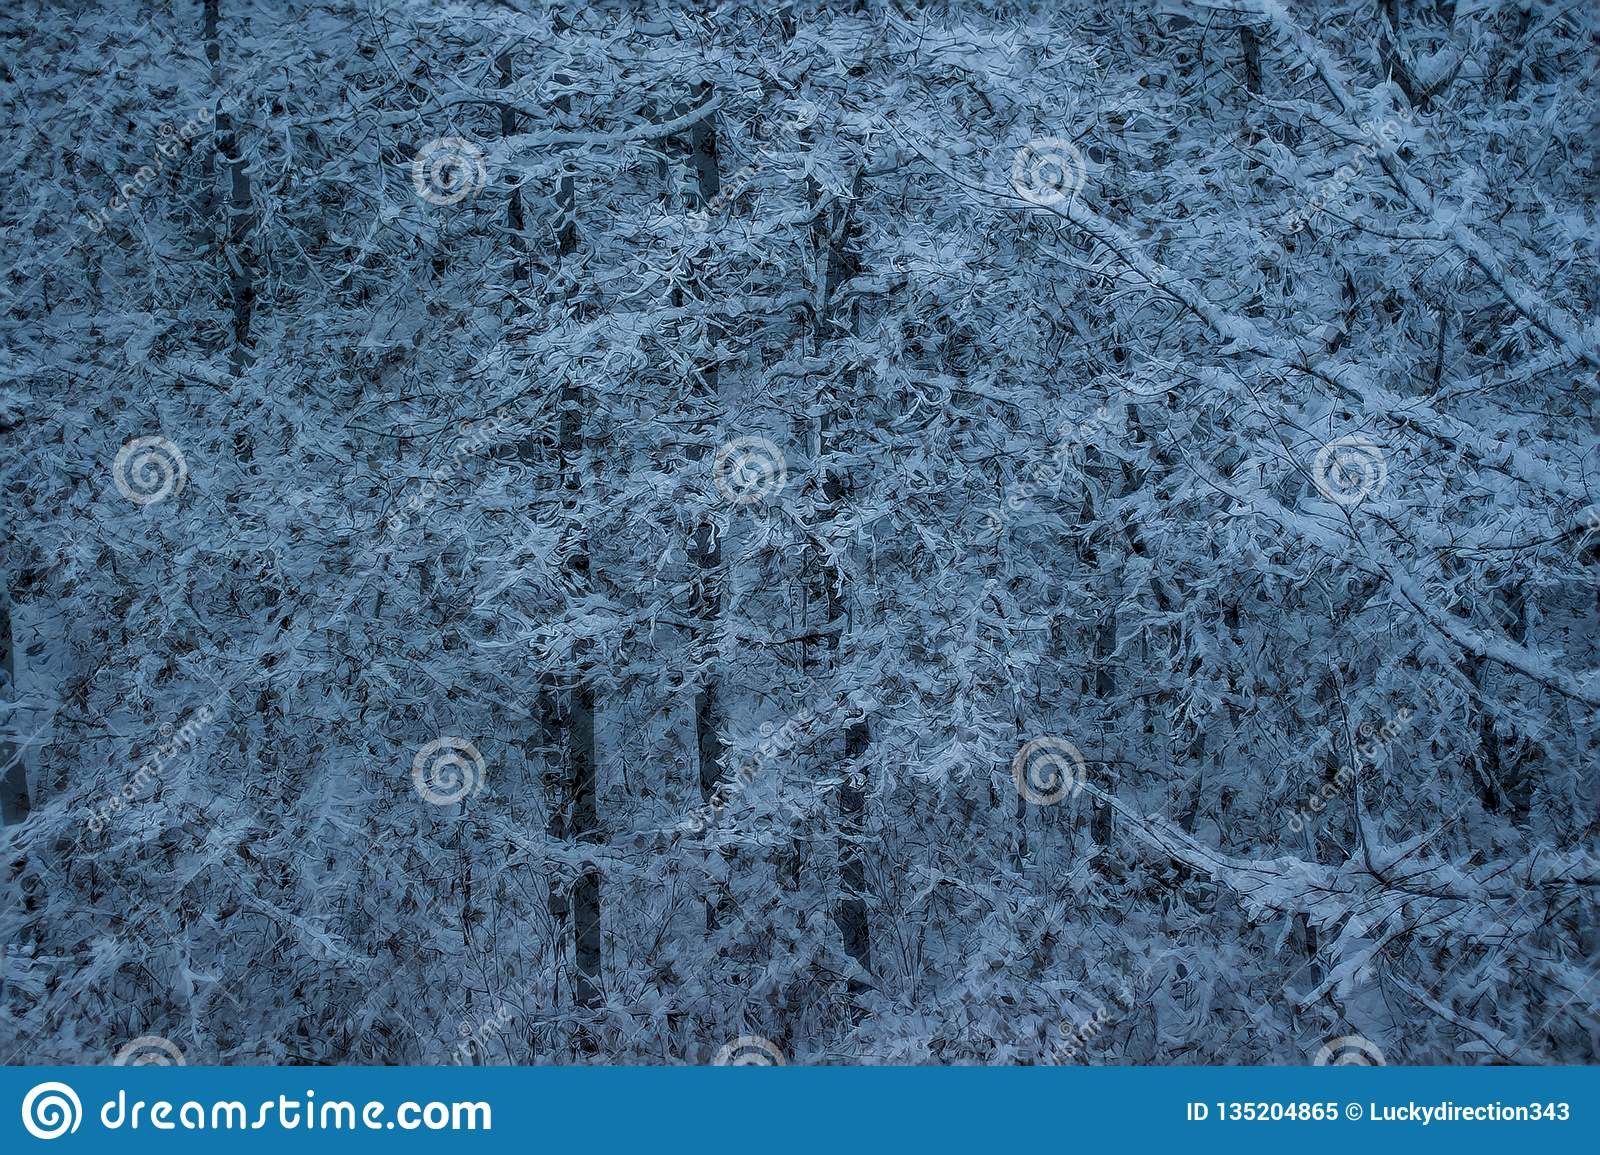 Snow on trees closeup background wallpaper